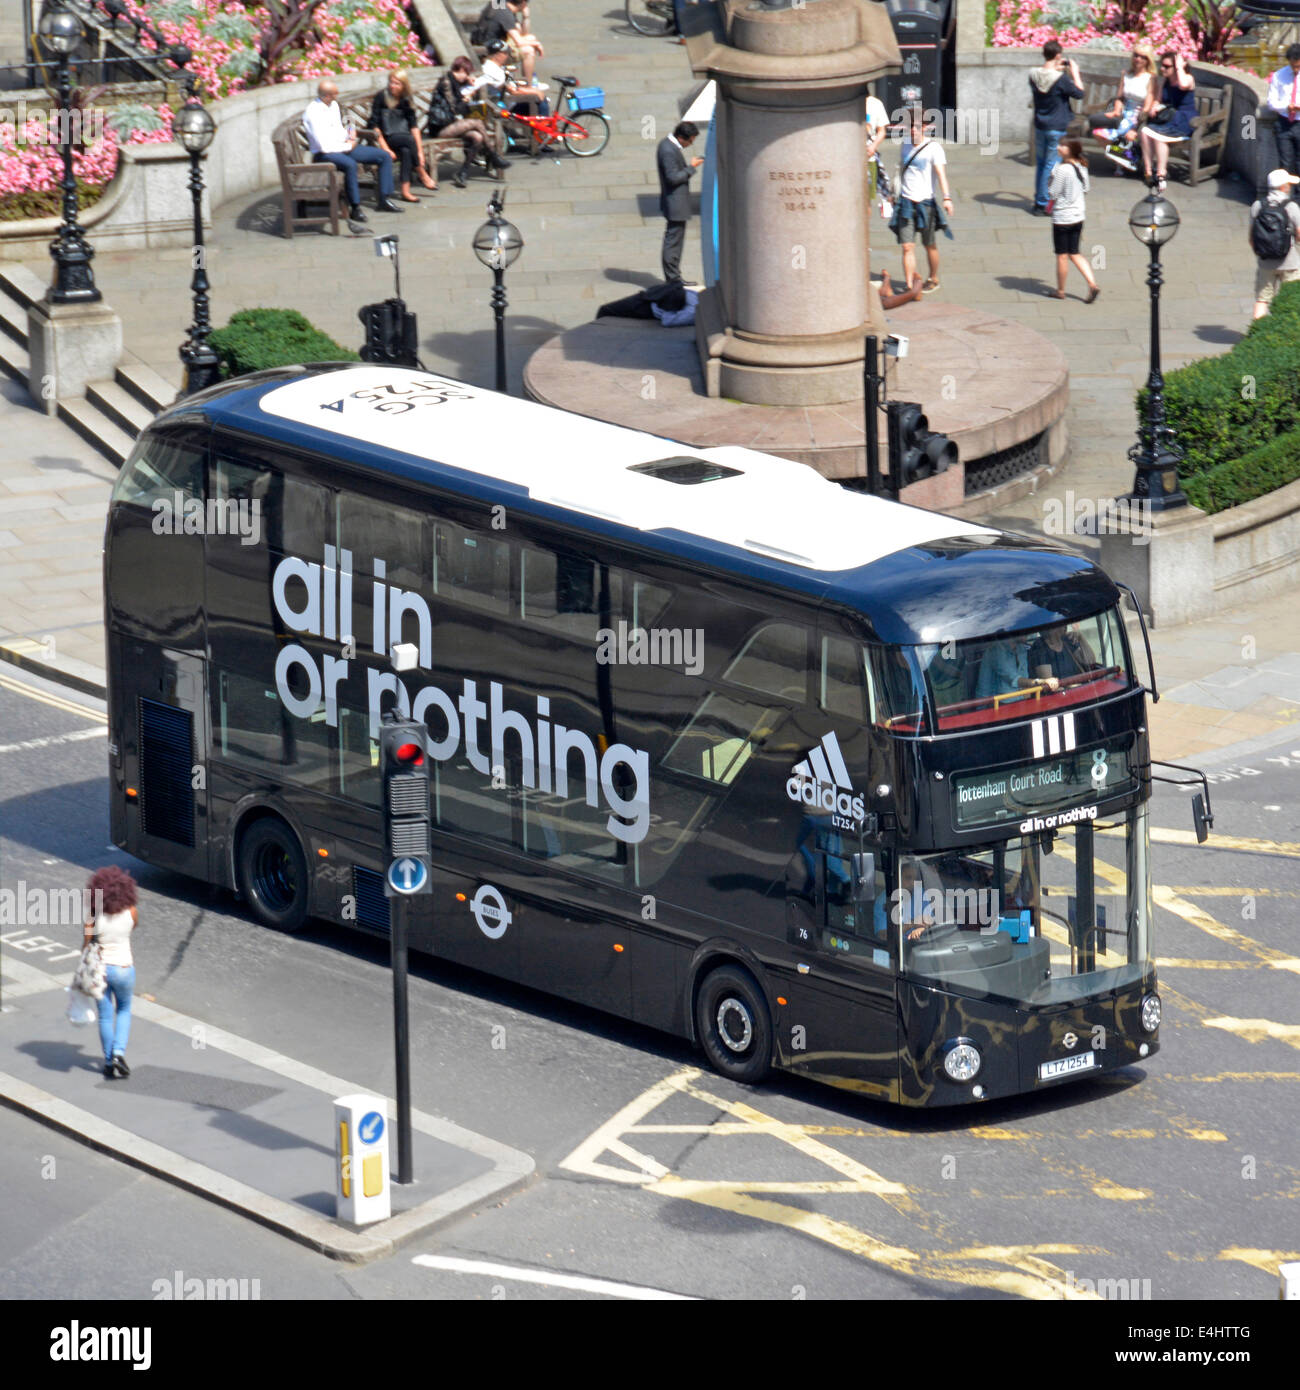 Adidas advertising on new London Routemaster Boris bus black with white roof instead of red - Stock Image